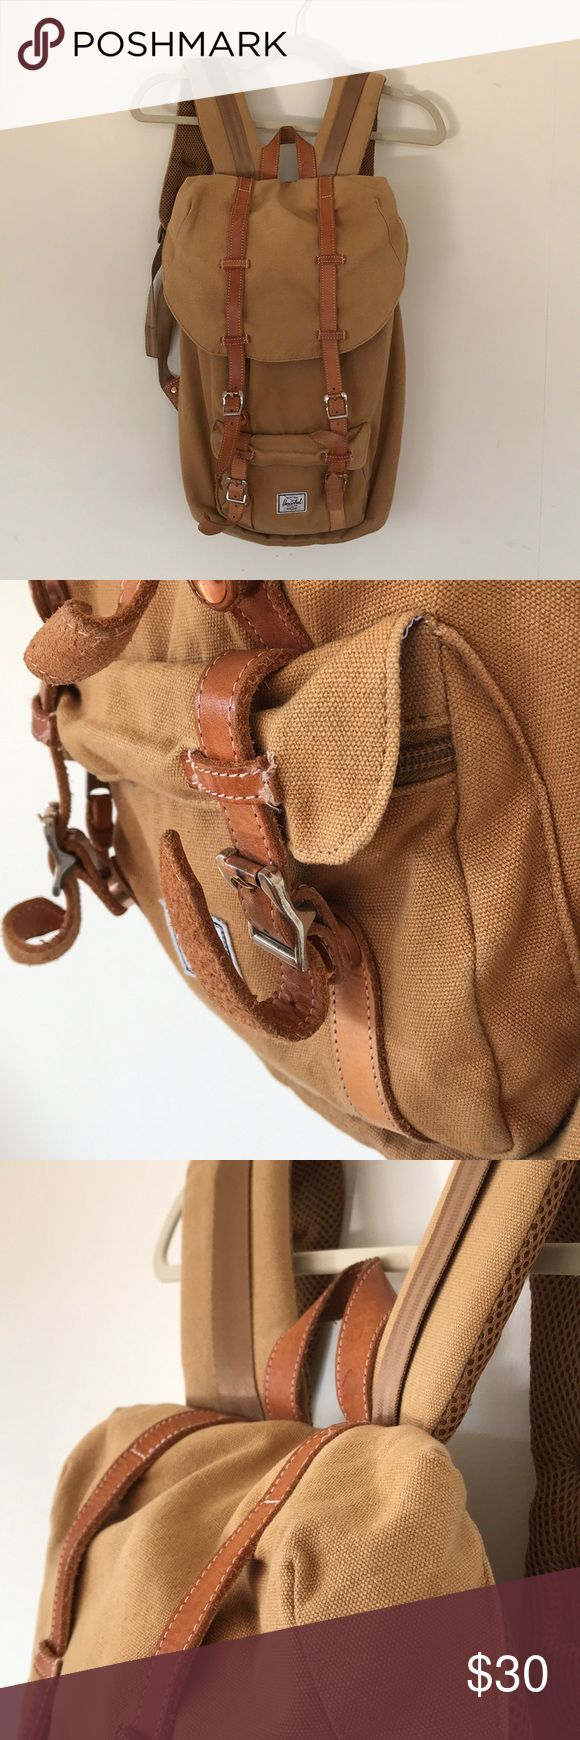 Hershel Camel Backpack Well loved and used backpack that needs a new home! Hershel Bags Backpacks